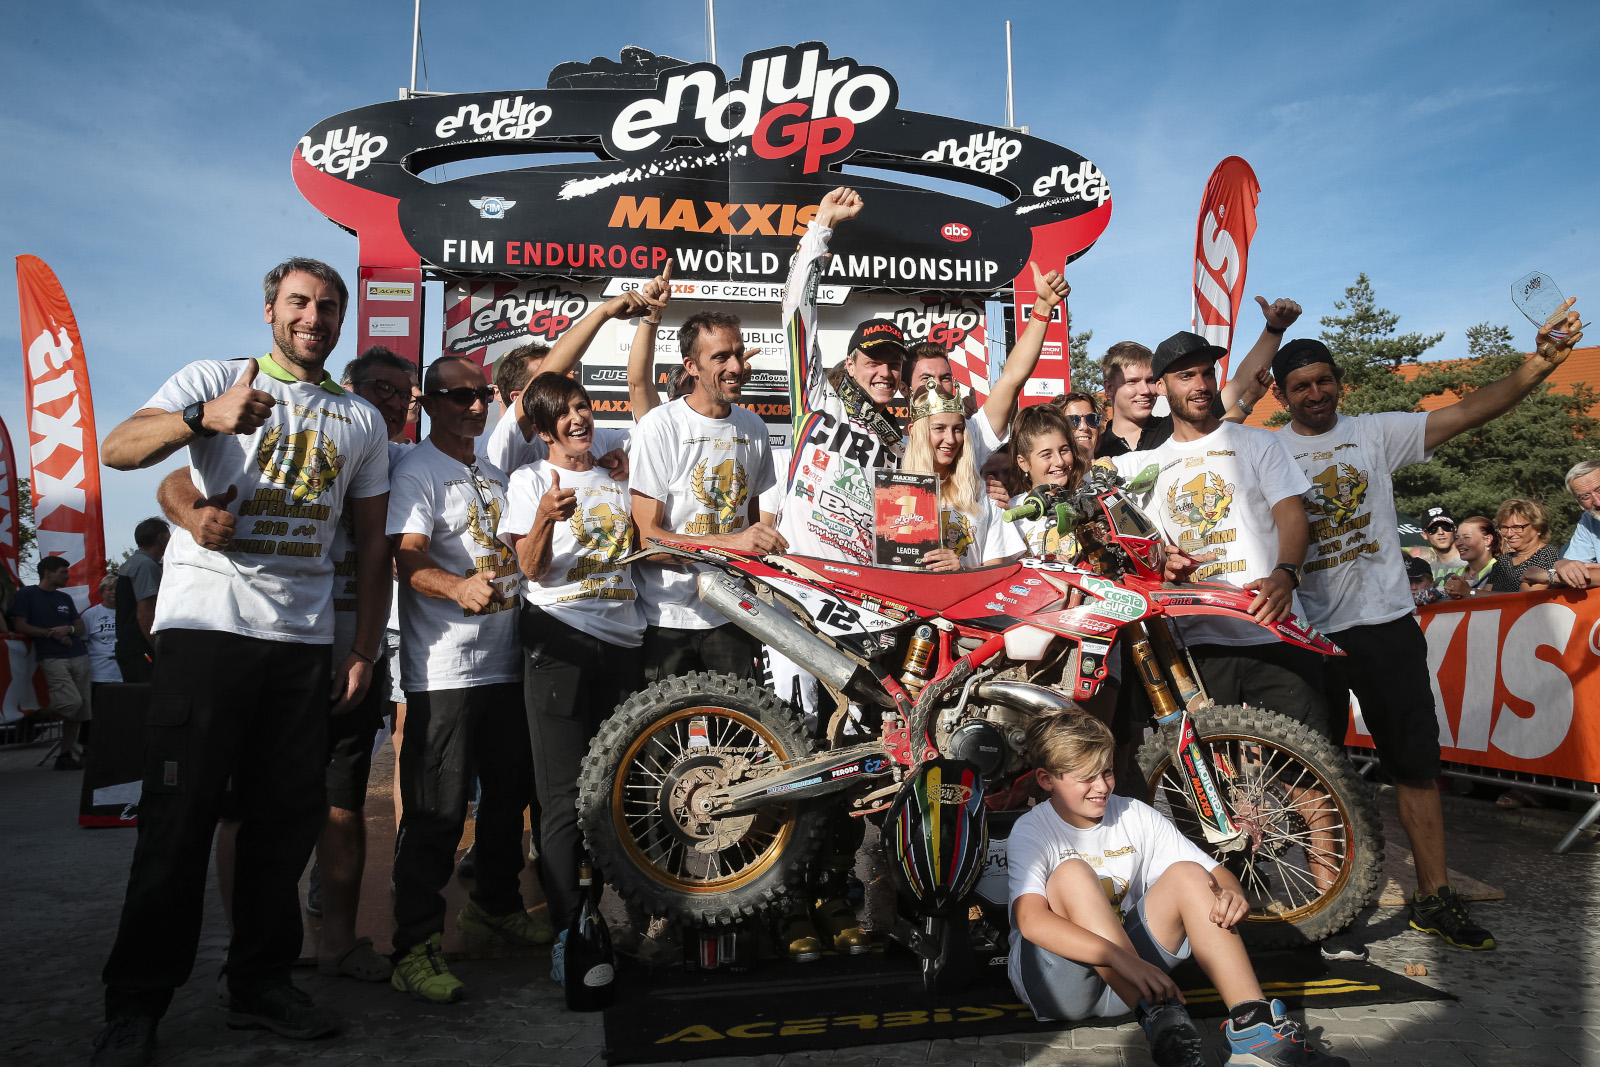 Results feed: French EnduroGP day 2 – Freeman wins 2019 EnduroGP World title